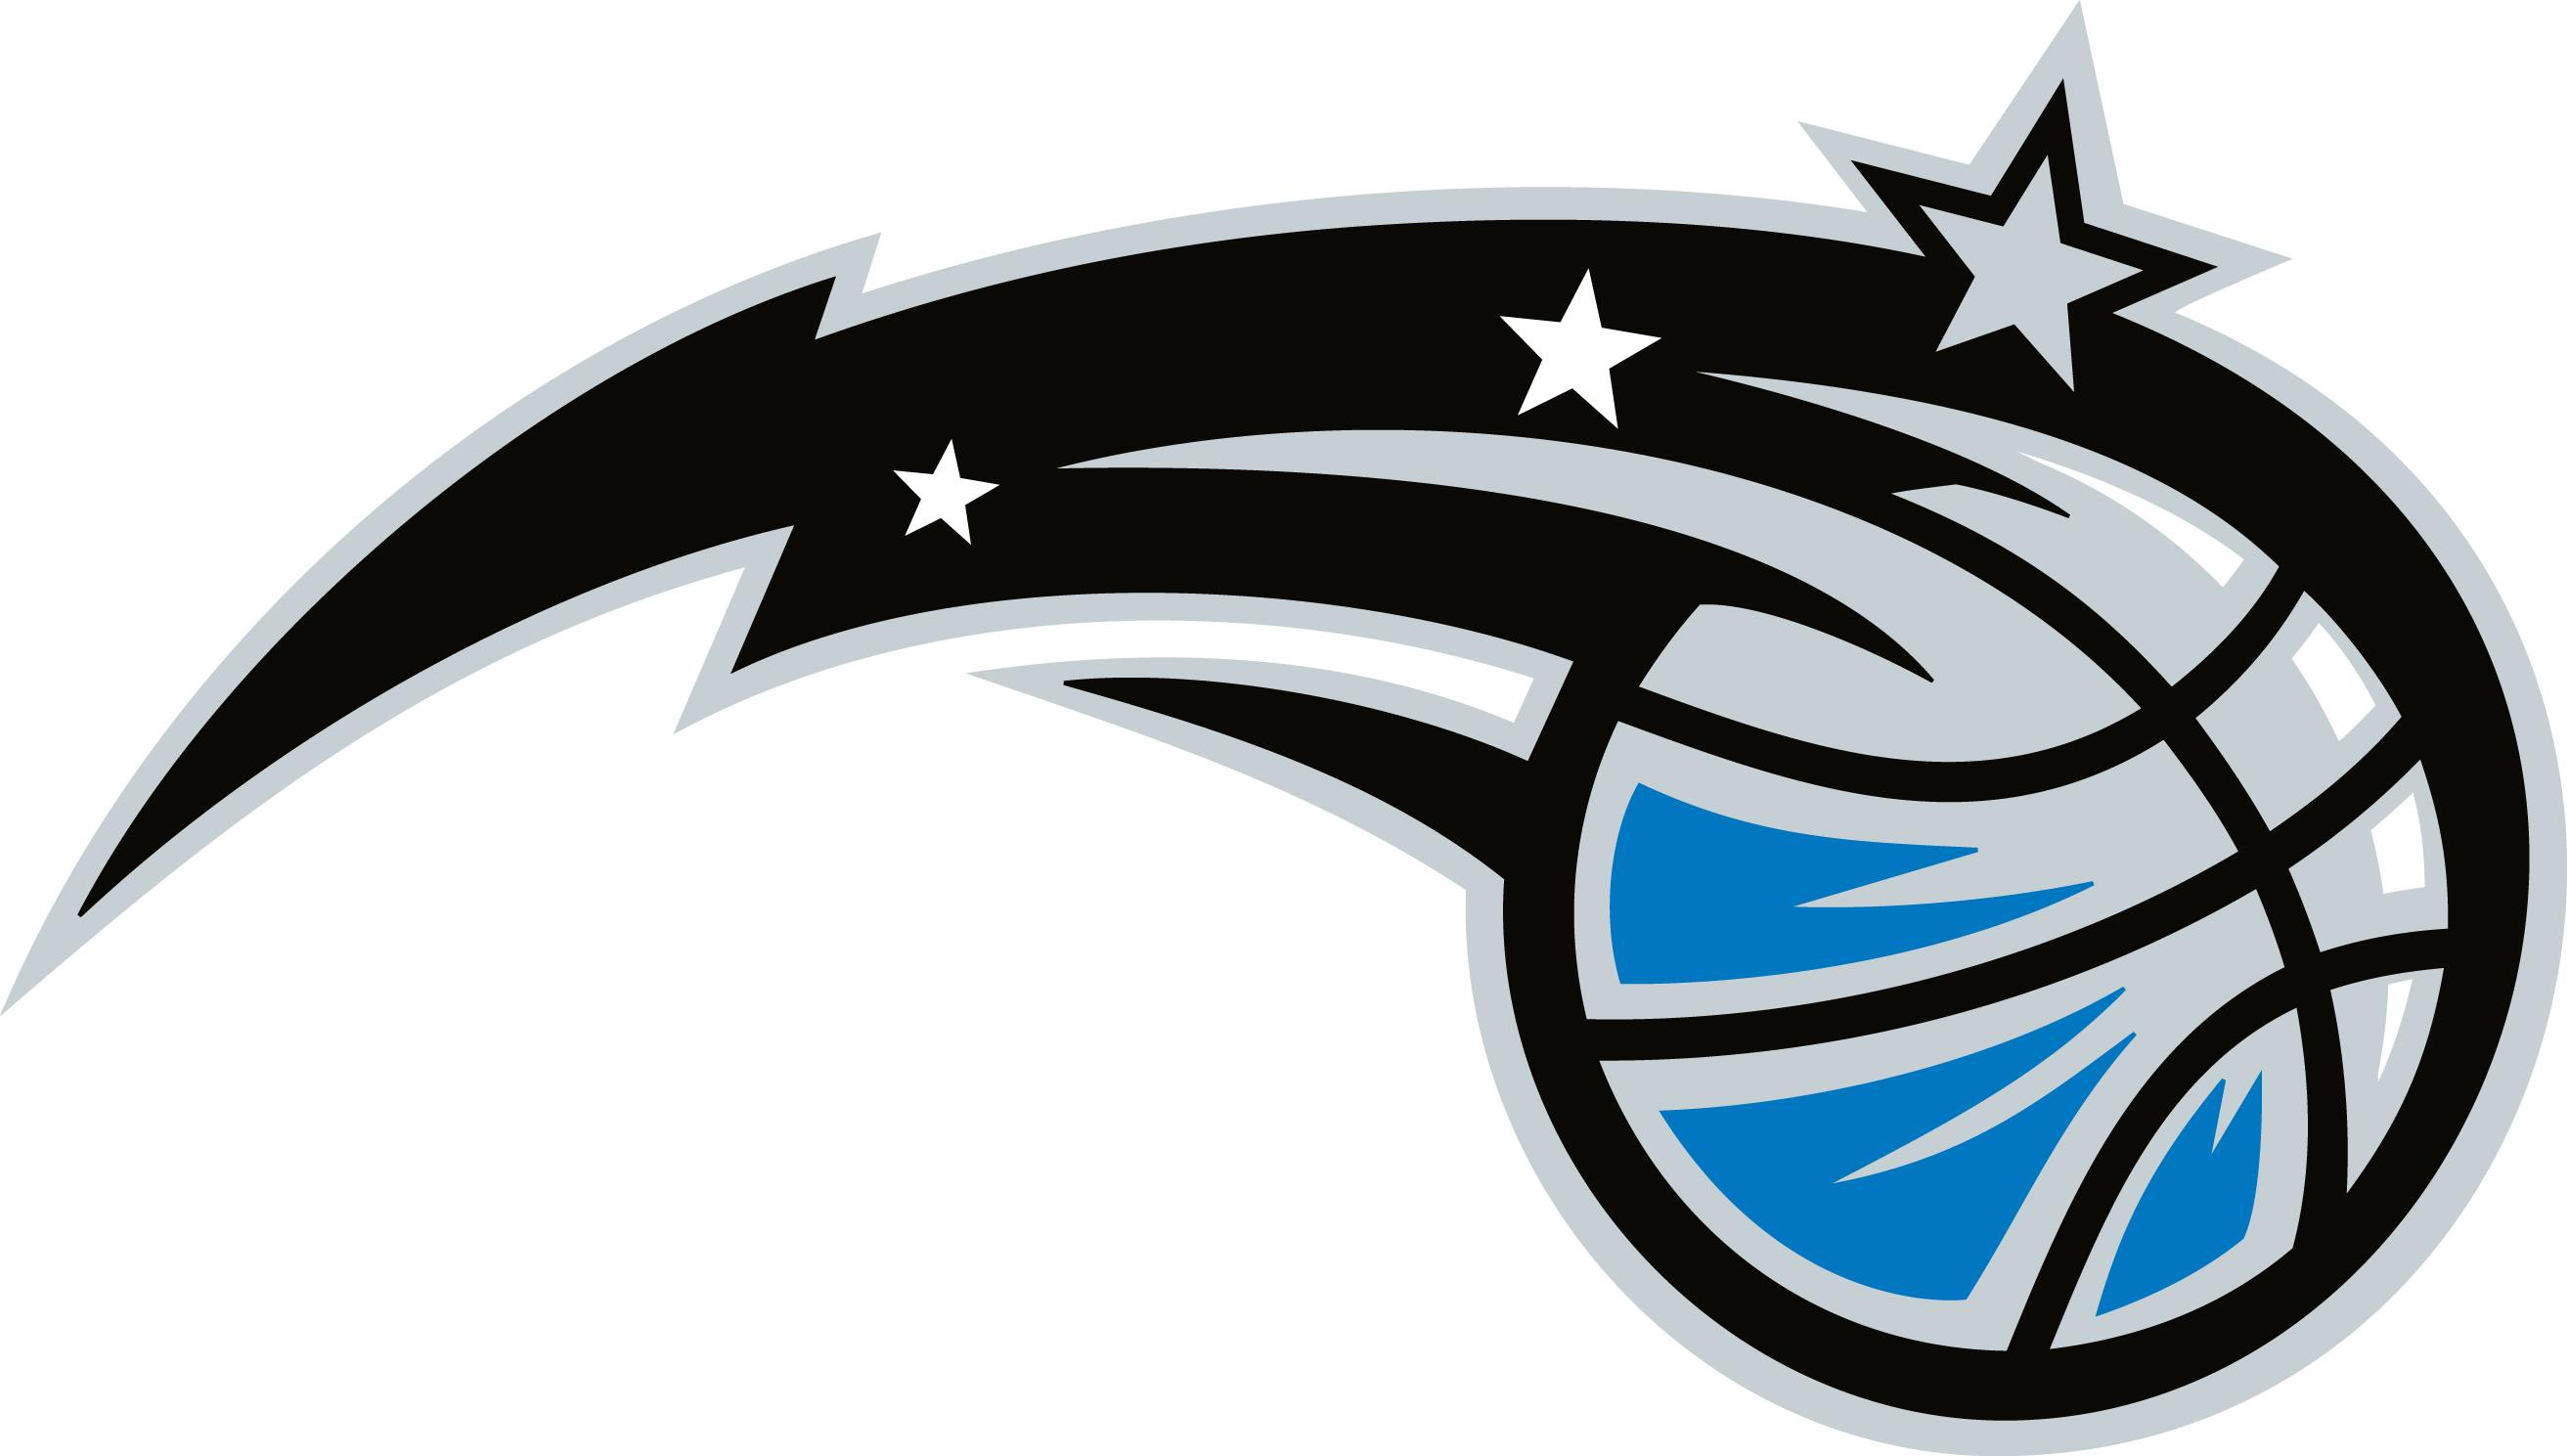 Orlando Magic 2015 Season Schedule Released